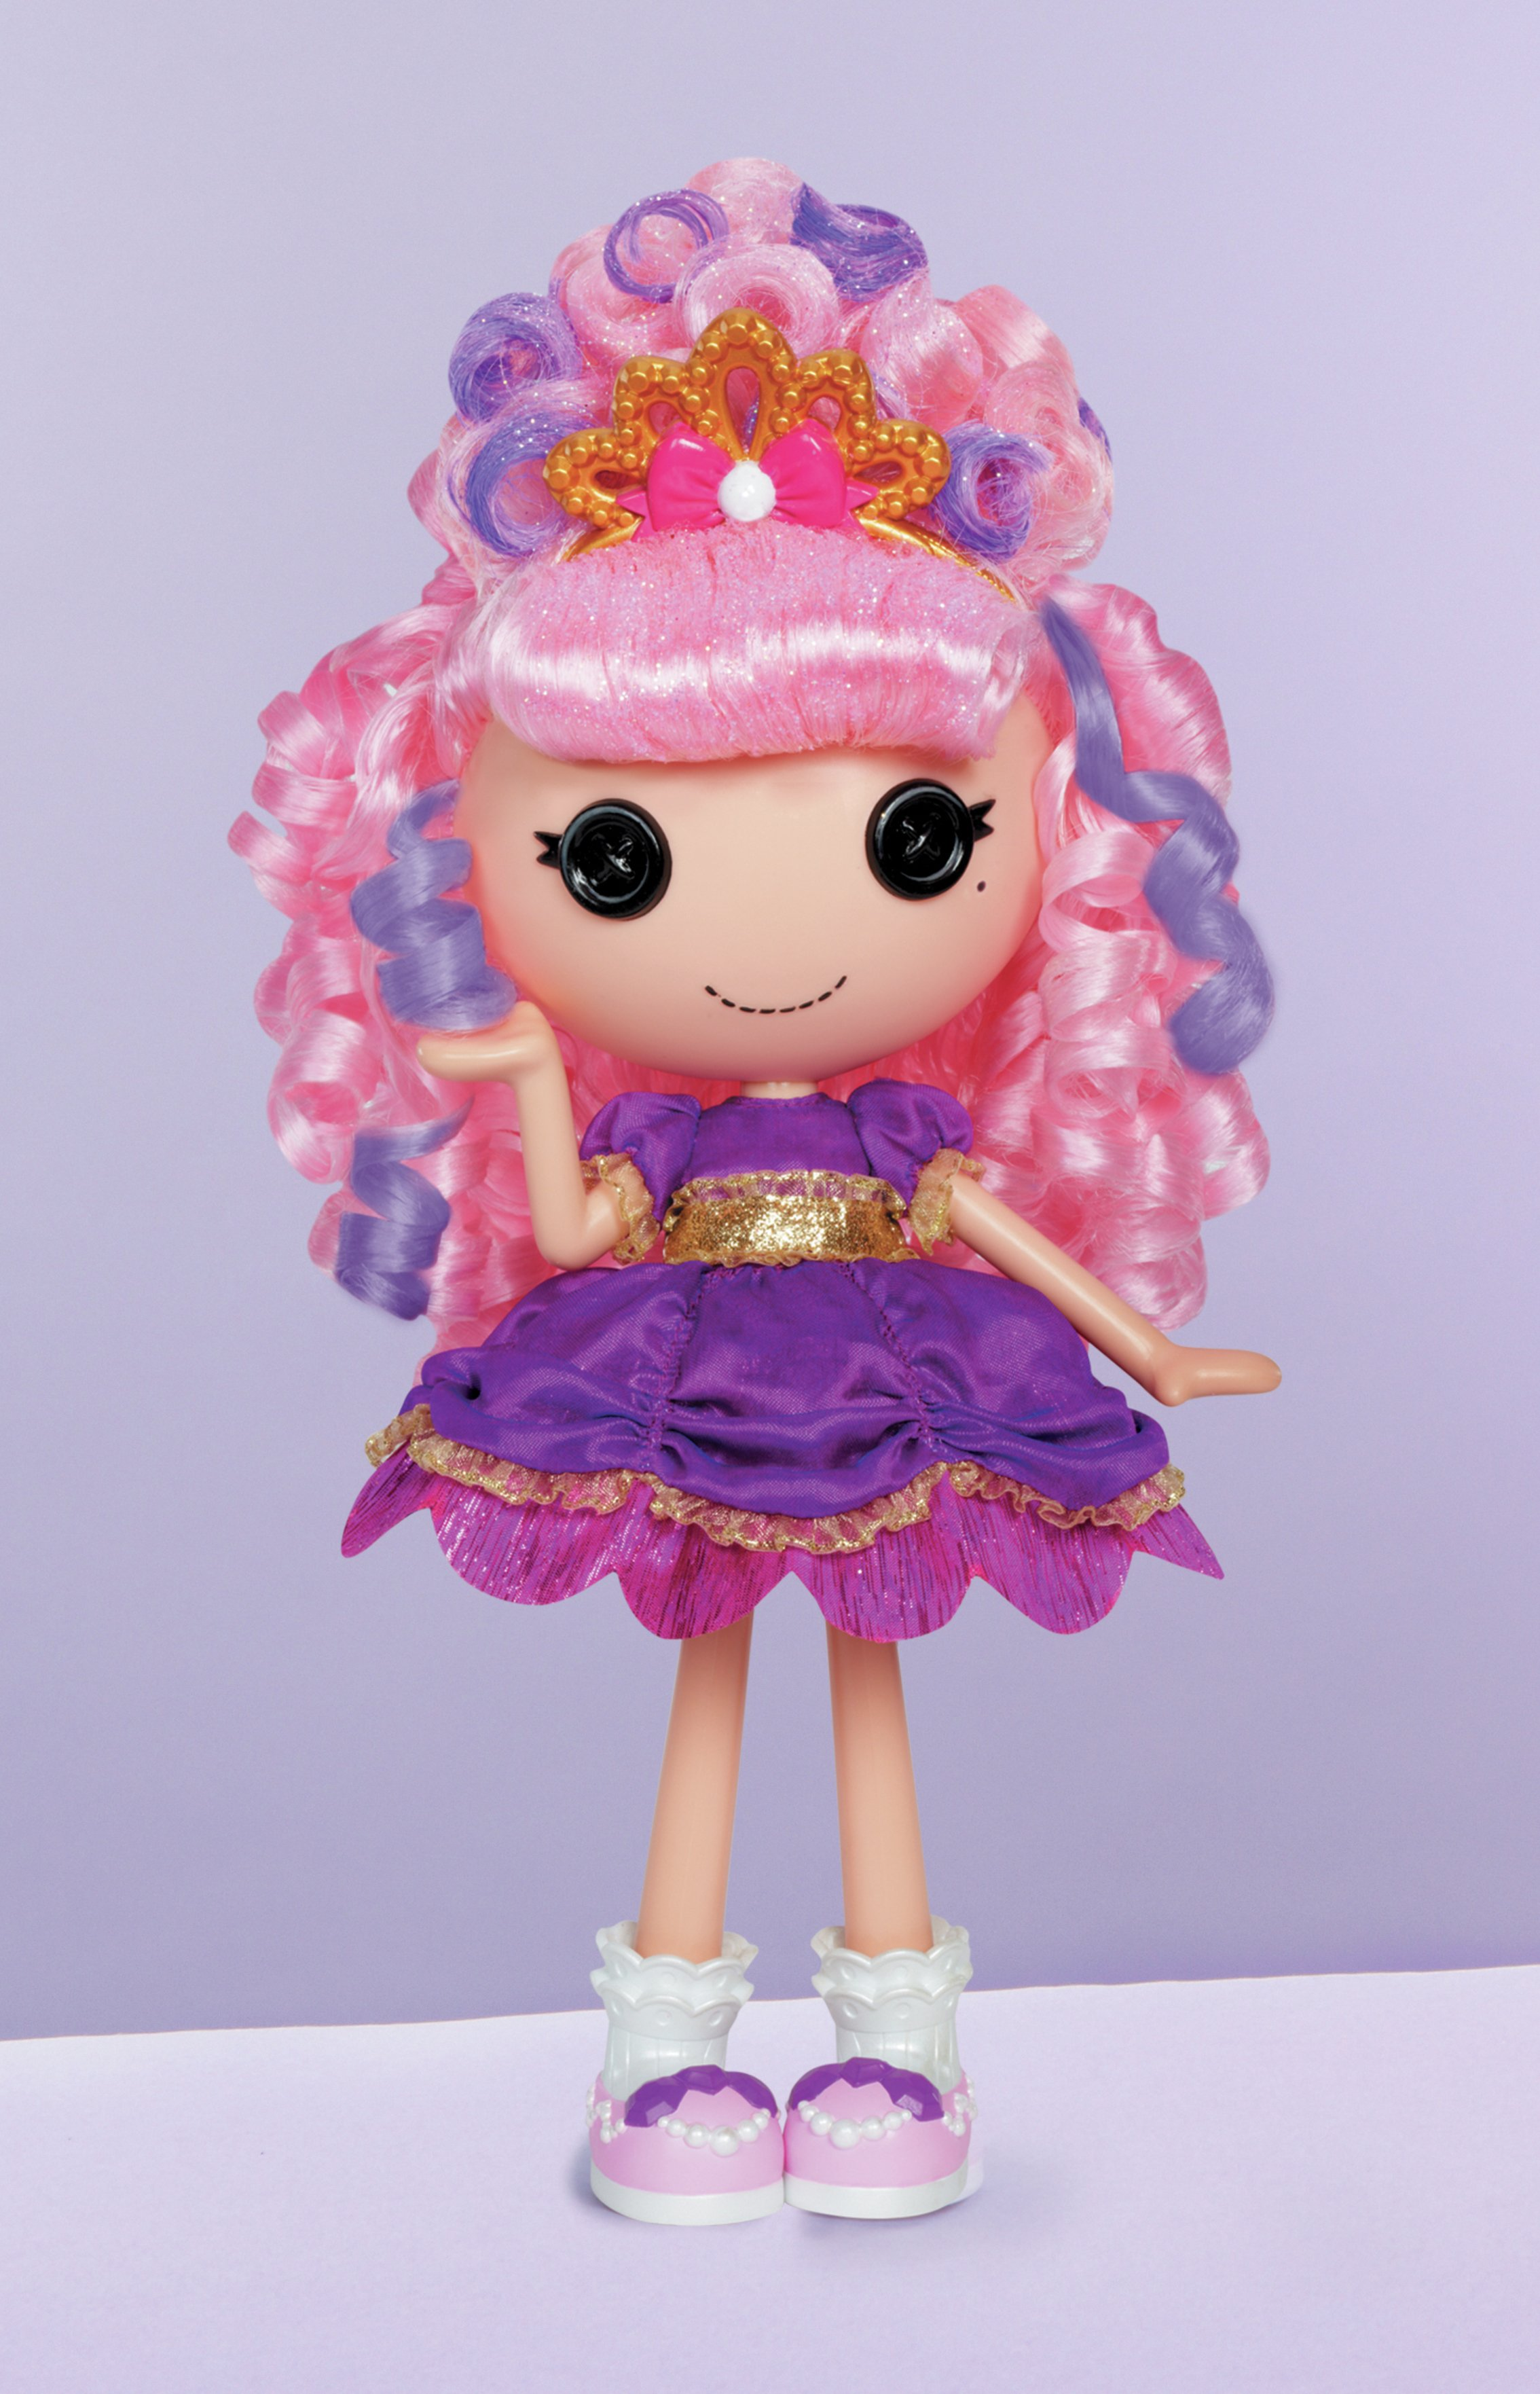 Buy Lalaloopsy Glitter Makeover Doll at Argos.co.uk - Your Online ...